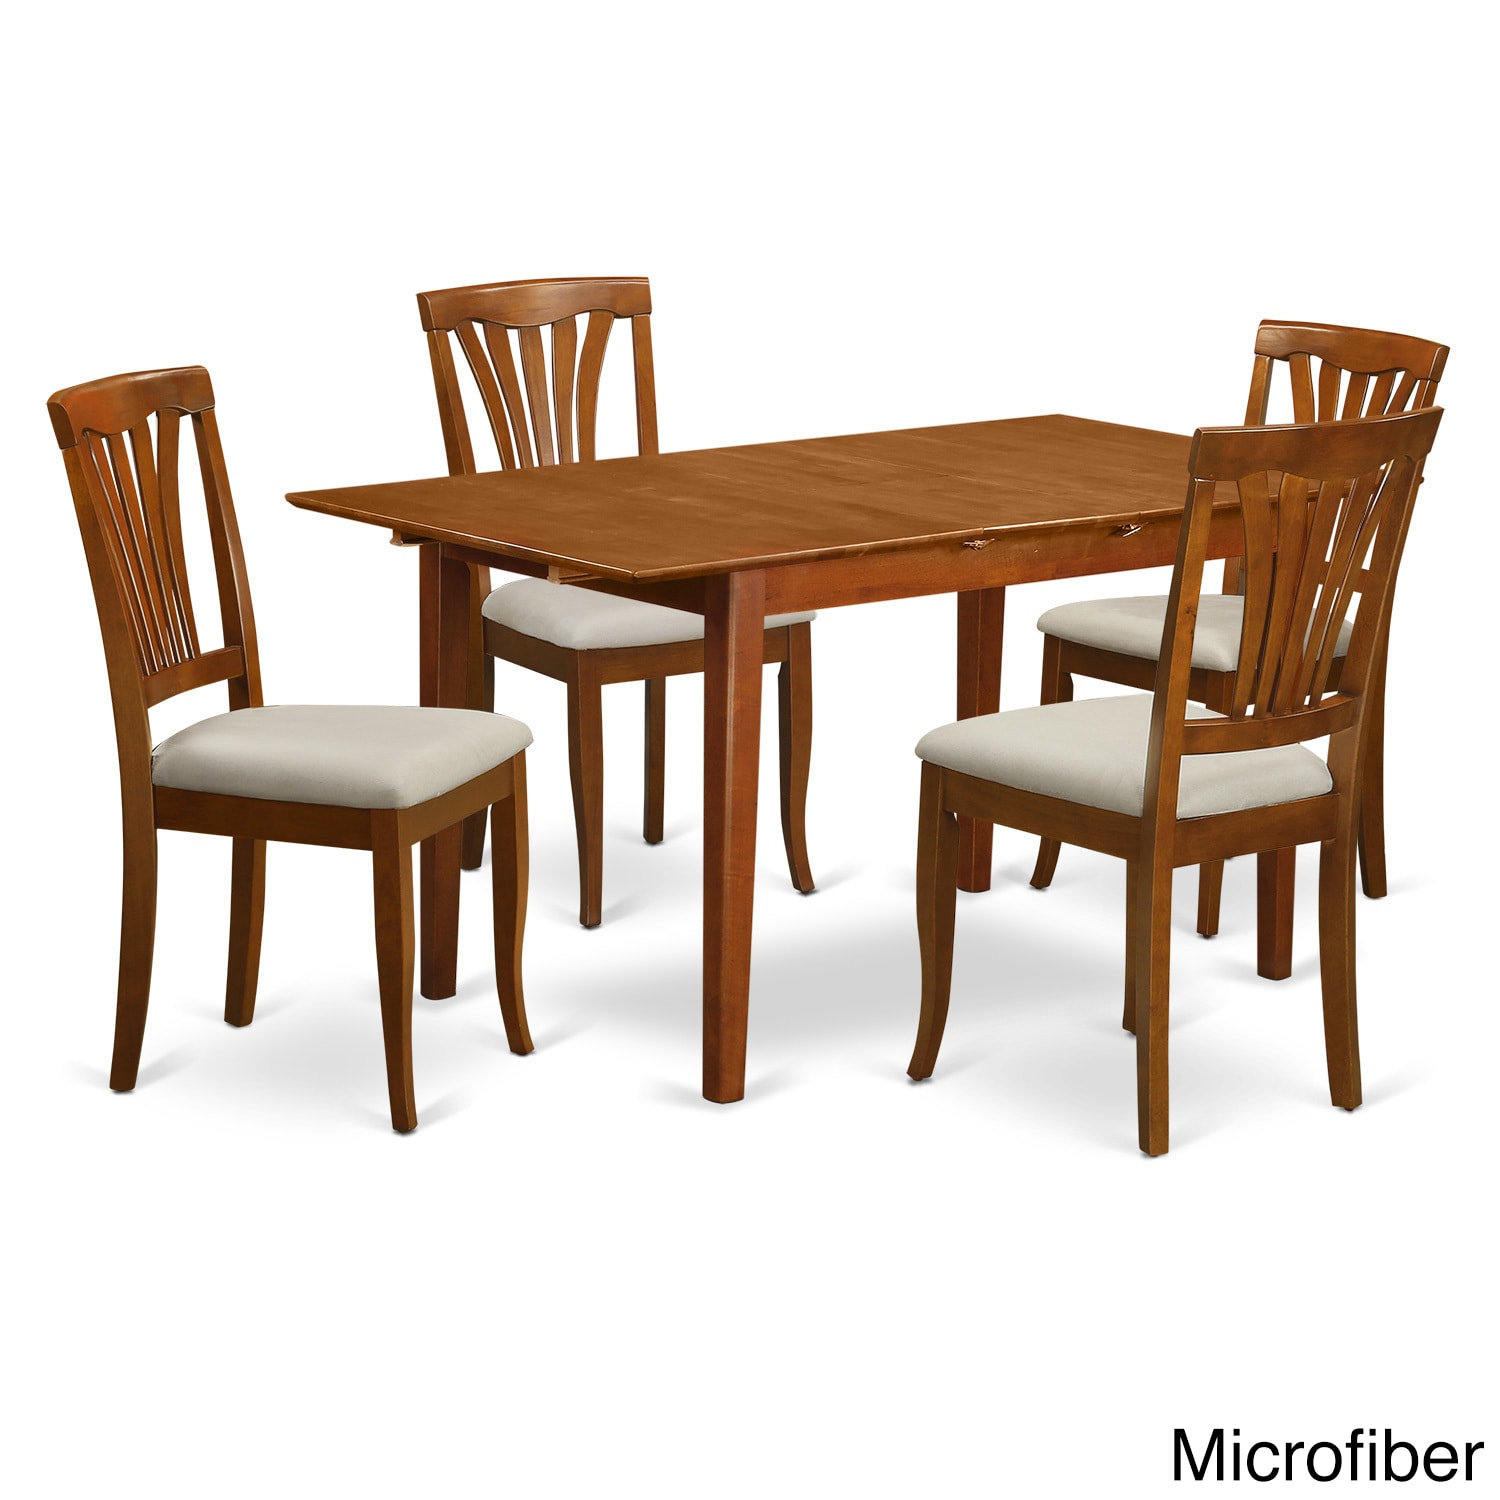 PSAV5-SBR Table with Leaf 4-chair 5-piece Small Dinette S...